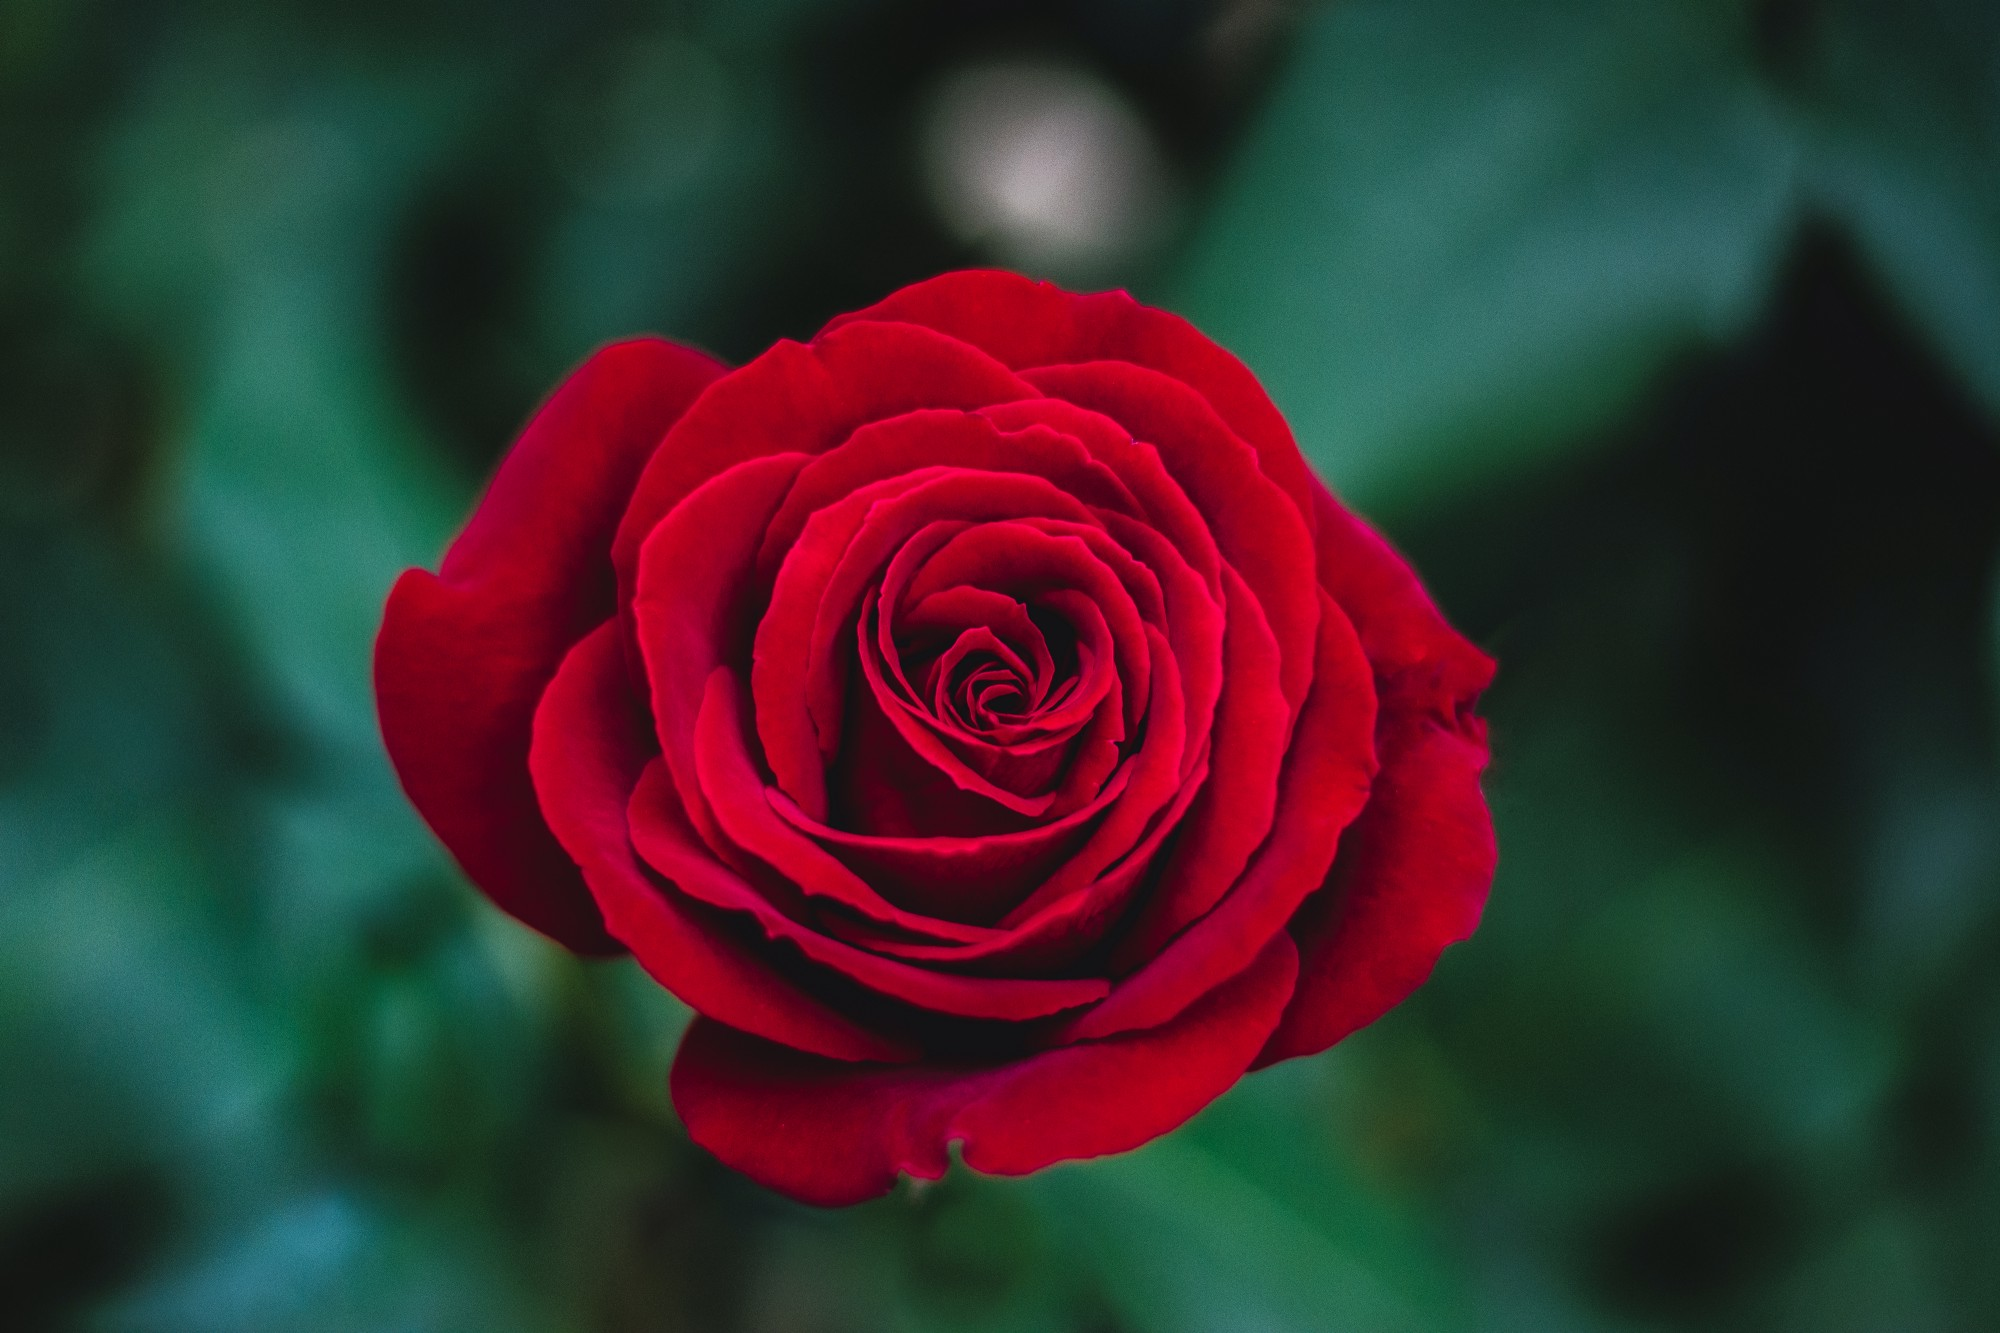 the rose p s i love you